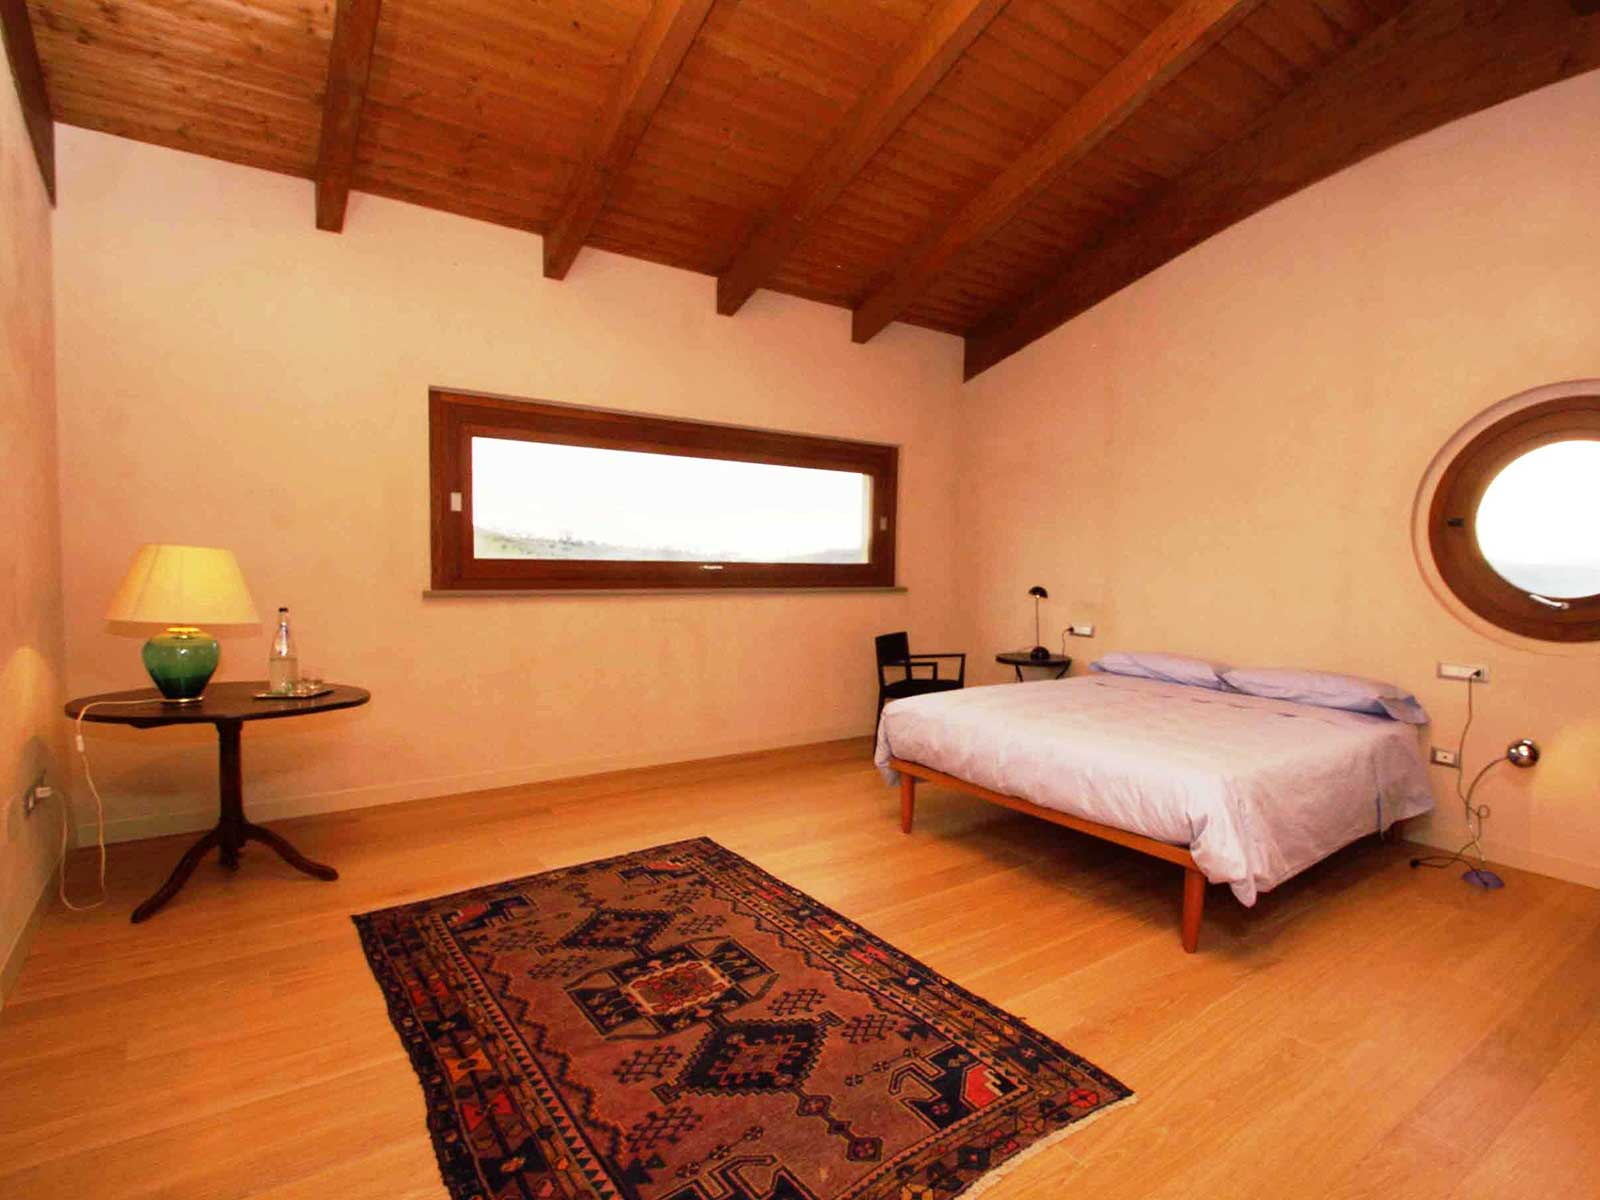 Country Houses Country Houses for sale Penne (PE), Casa Cignale - Penne - EUR 0 110